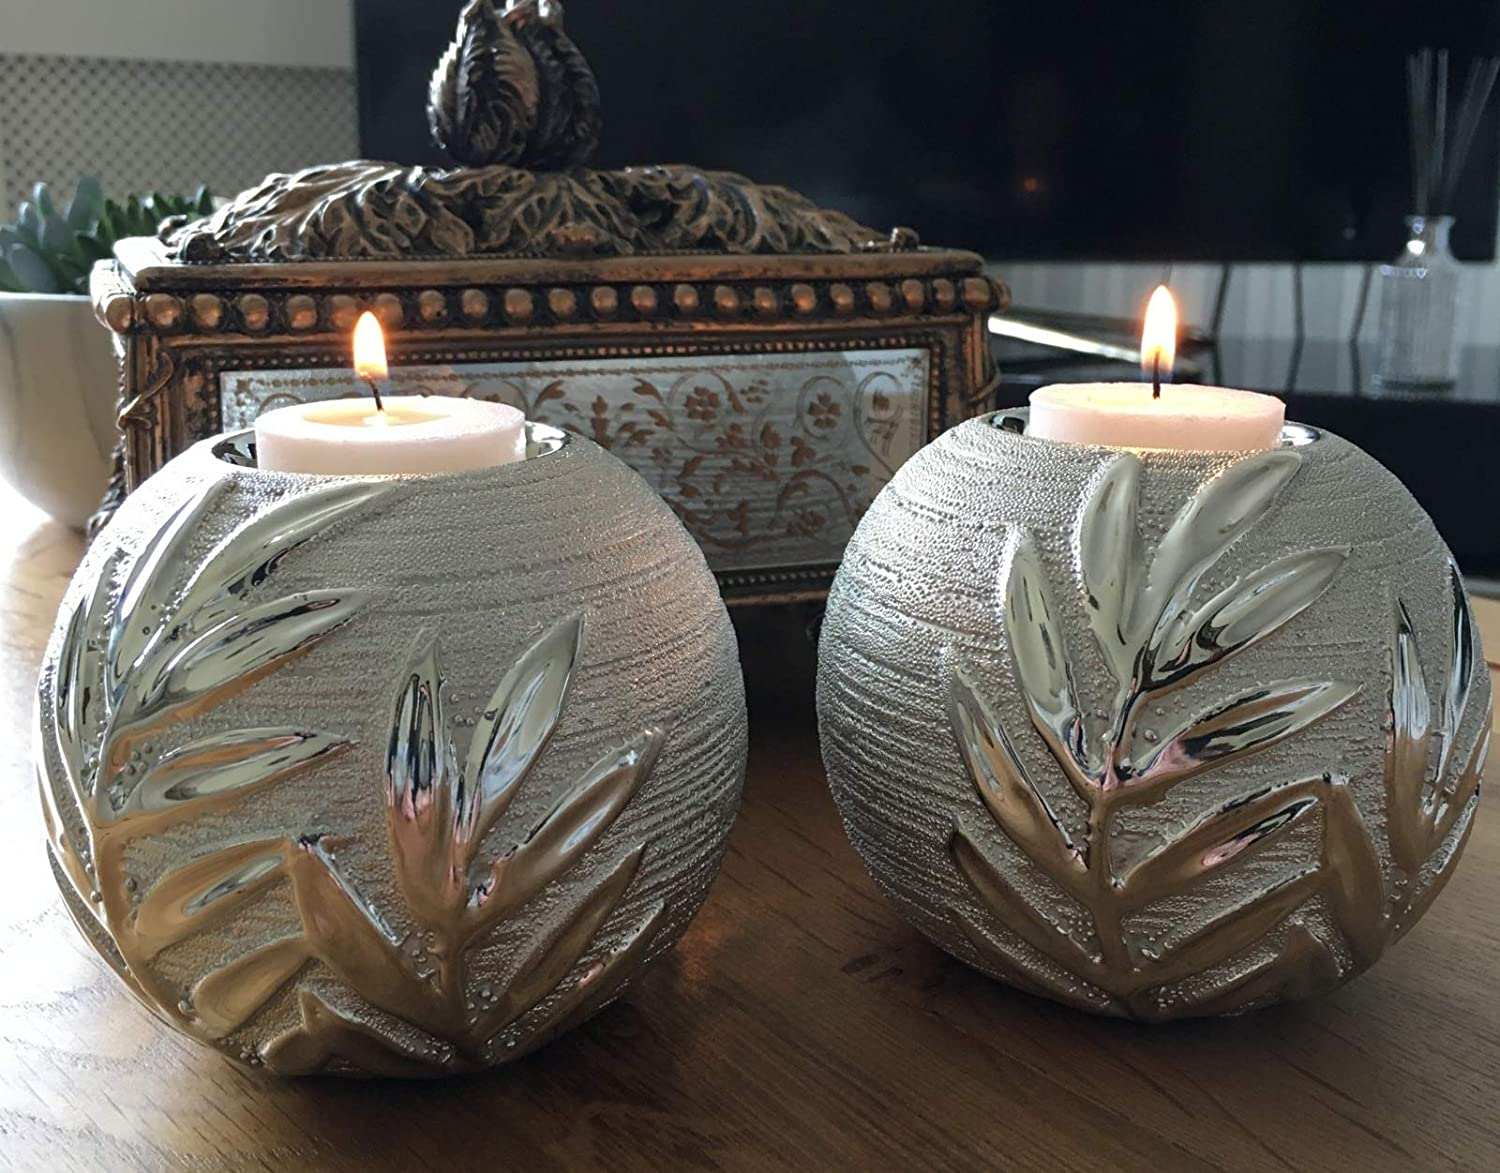 hdg Pair Of Ceramic Willow Tea Light Candle Holders Silver Decorative Sphere Ornament Home Decor Gift